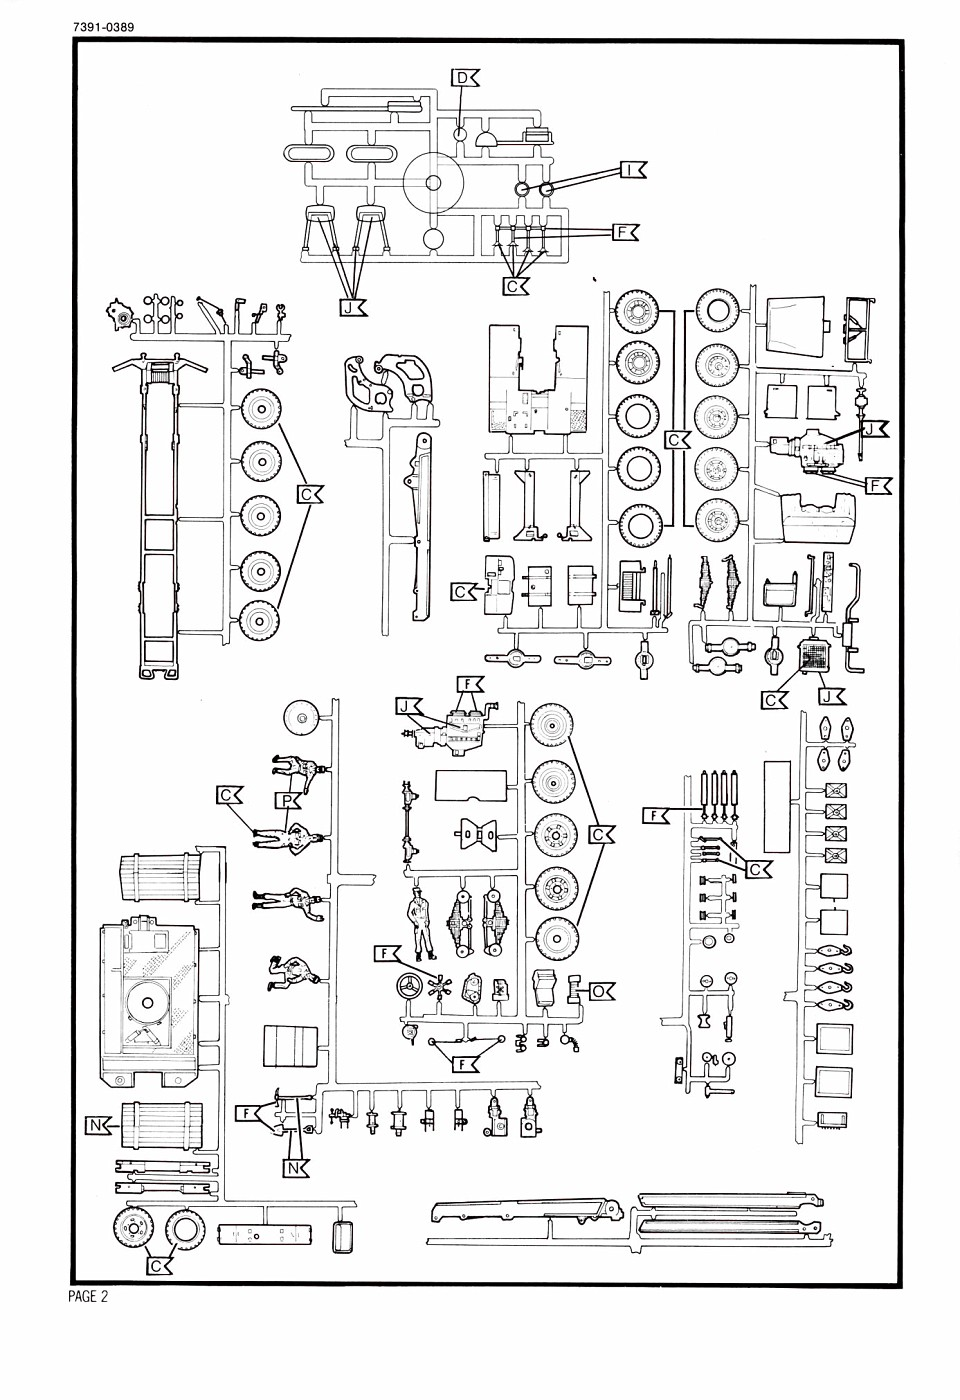 2012 Kenworth T800 Headlight Wiring Diagram Kenworth T800